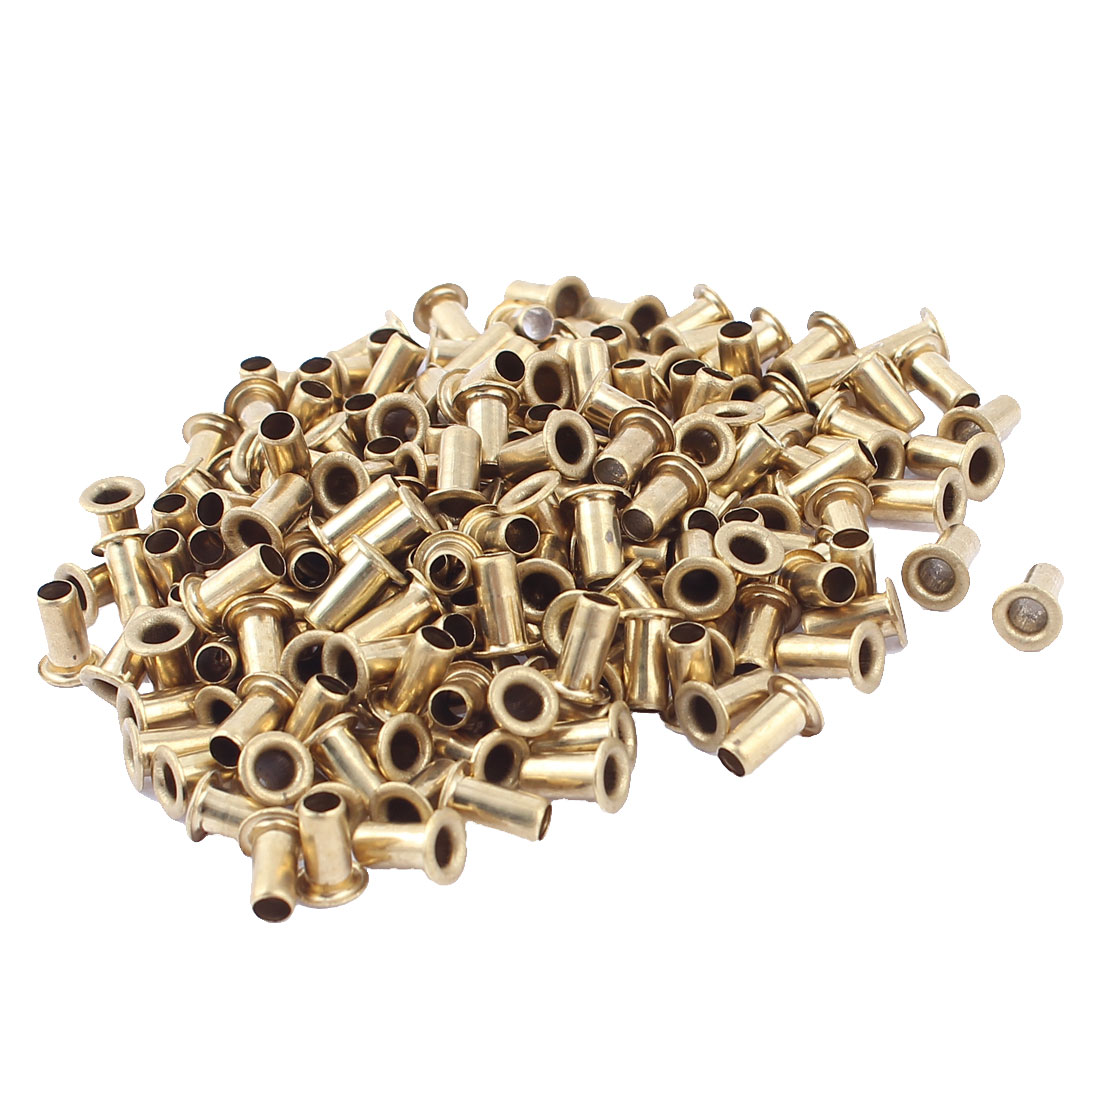 200pcs M4x8 Copper Via Vias Plated Through Hole Rivets Hollow Grommets PCB Circuit Board